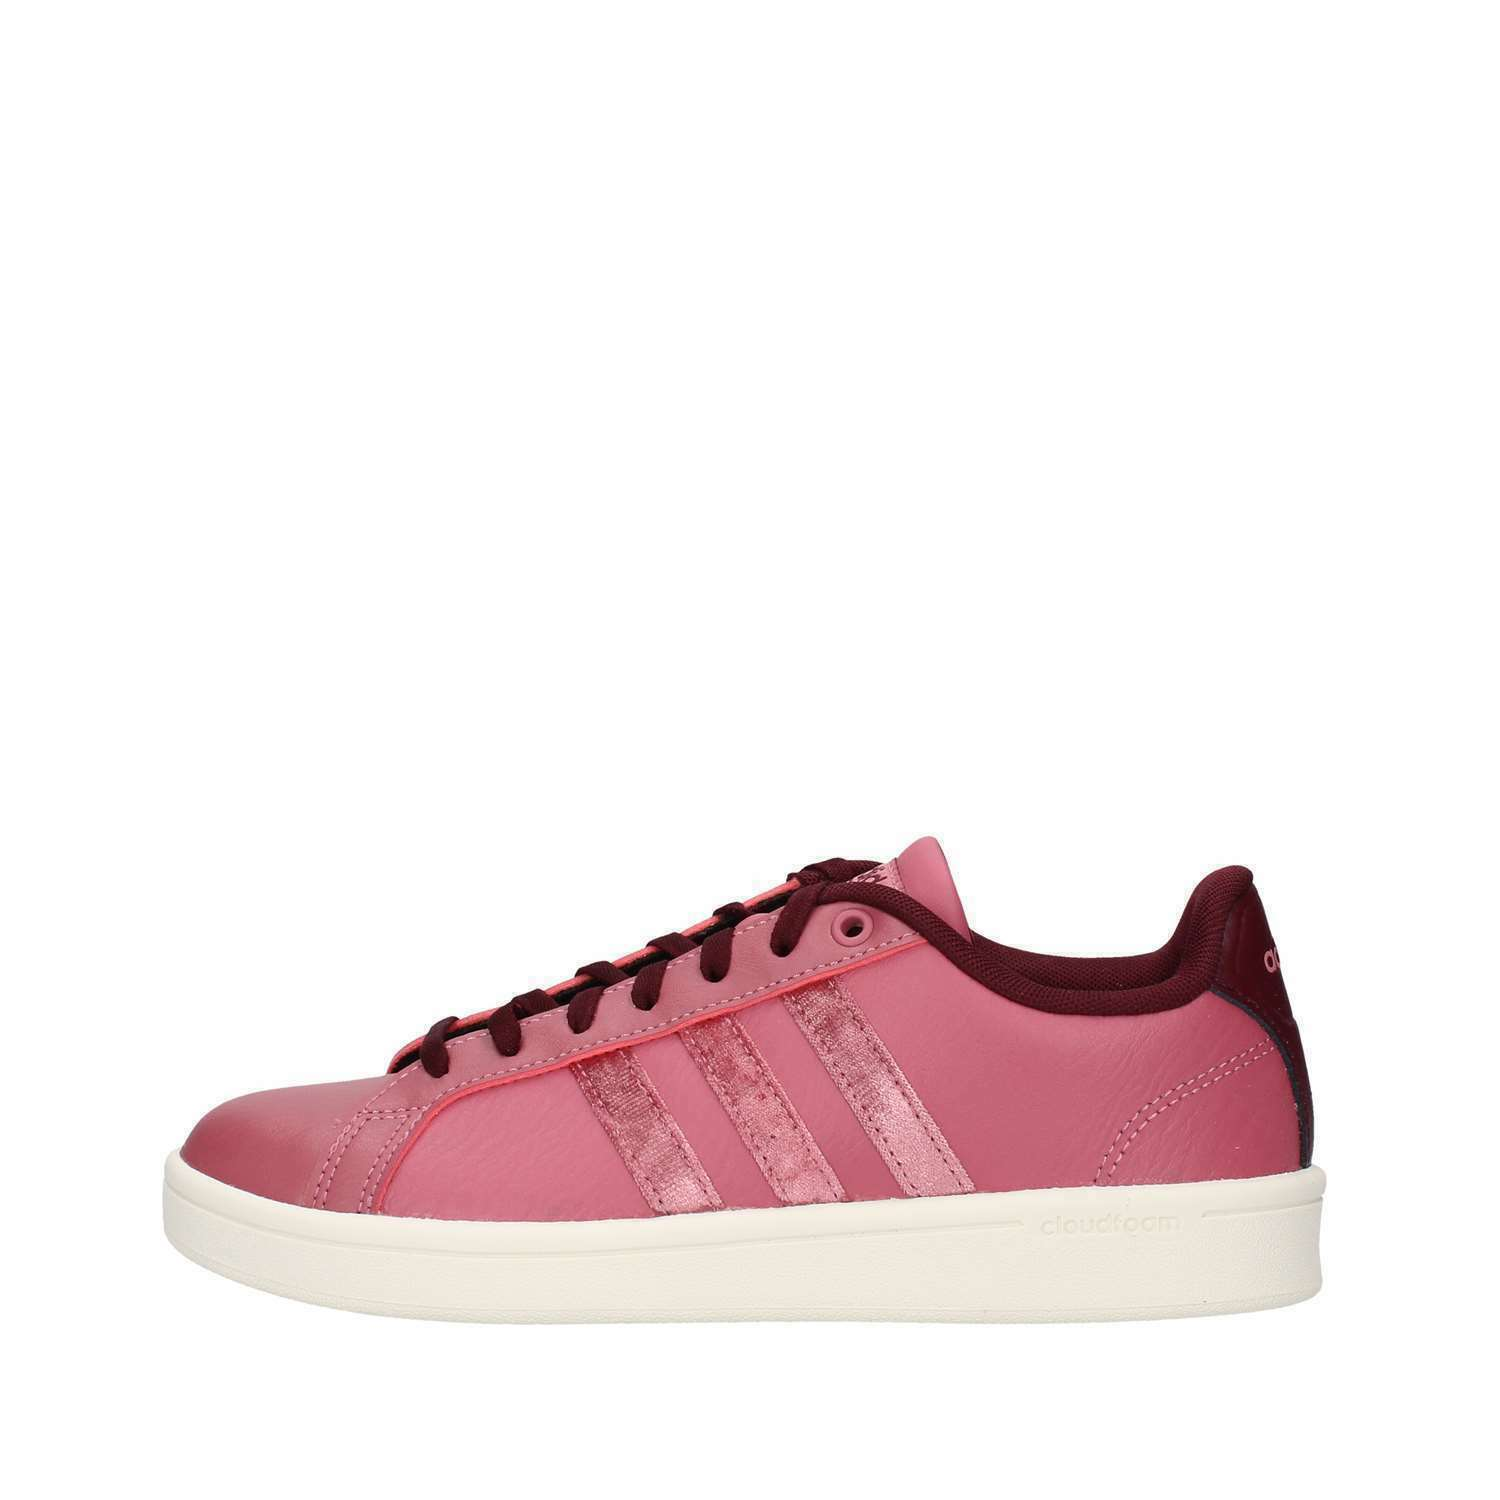 ADIDAS NEO CF ADVANTAGE sneakers ROSSO scarpe DONNA CASUAL cloudfoam BB7255